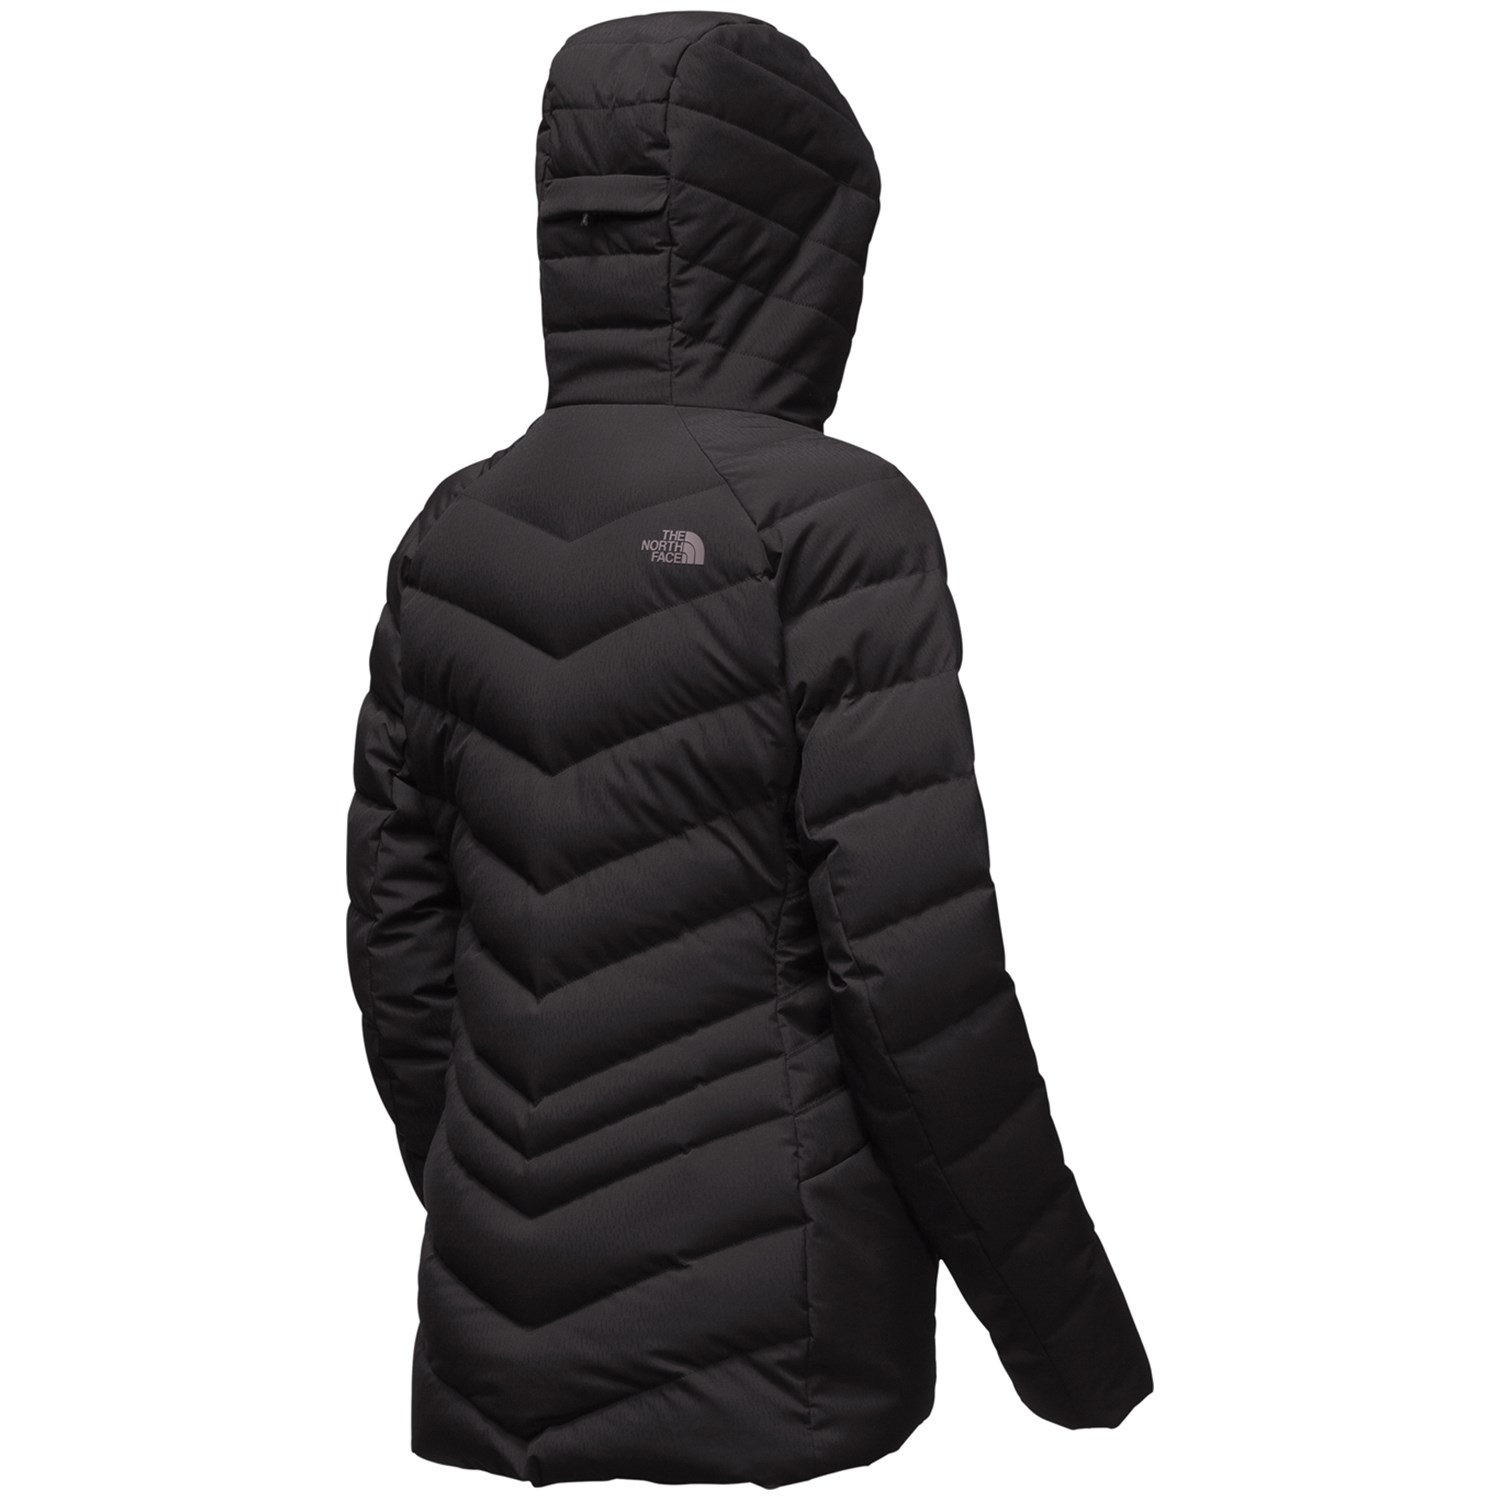 681762704 The North Face Heavenly Jacket - Women's